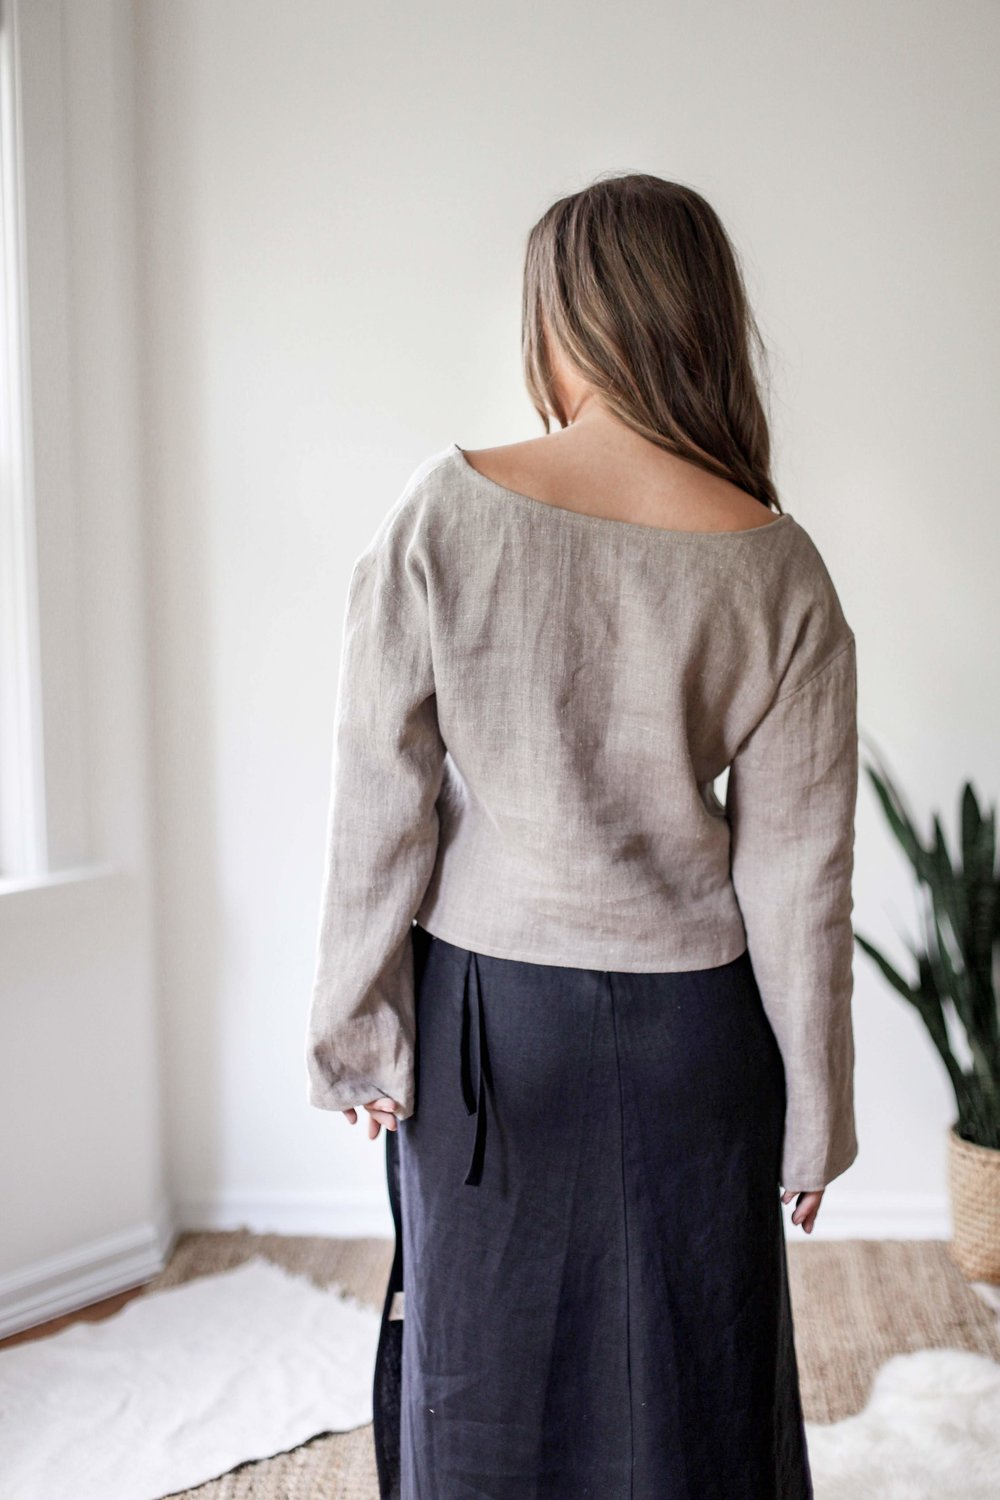 nomi-designs_taltal-top_natural-linen-long-sleeve-reversible-top_back.jpg